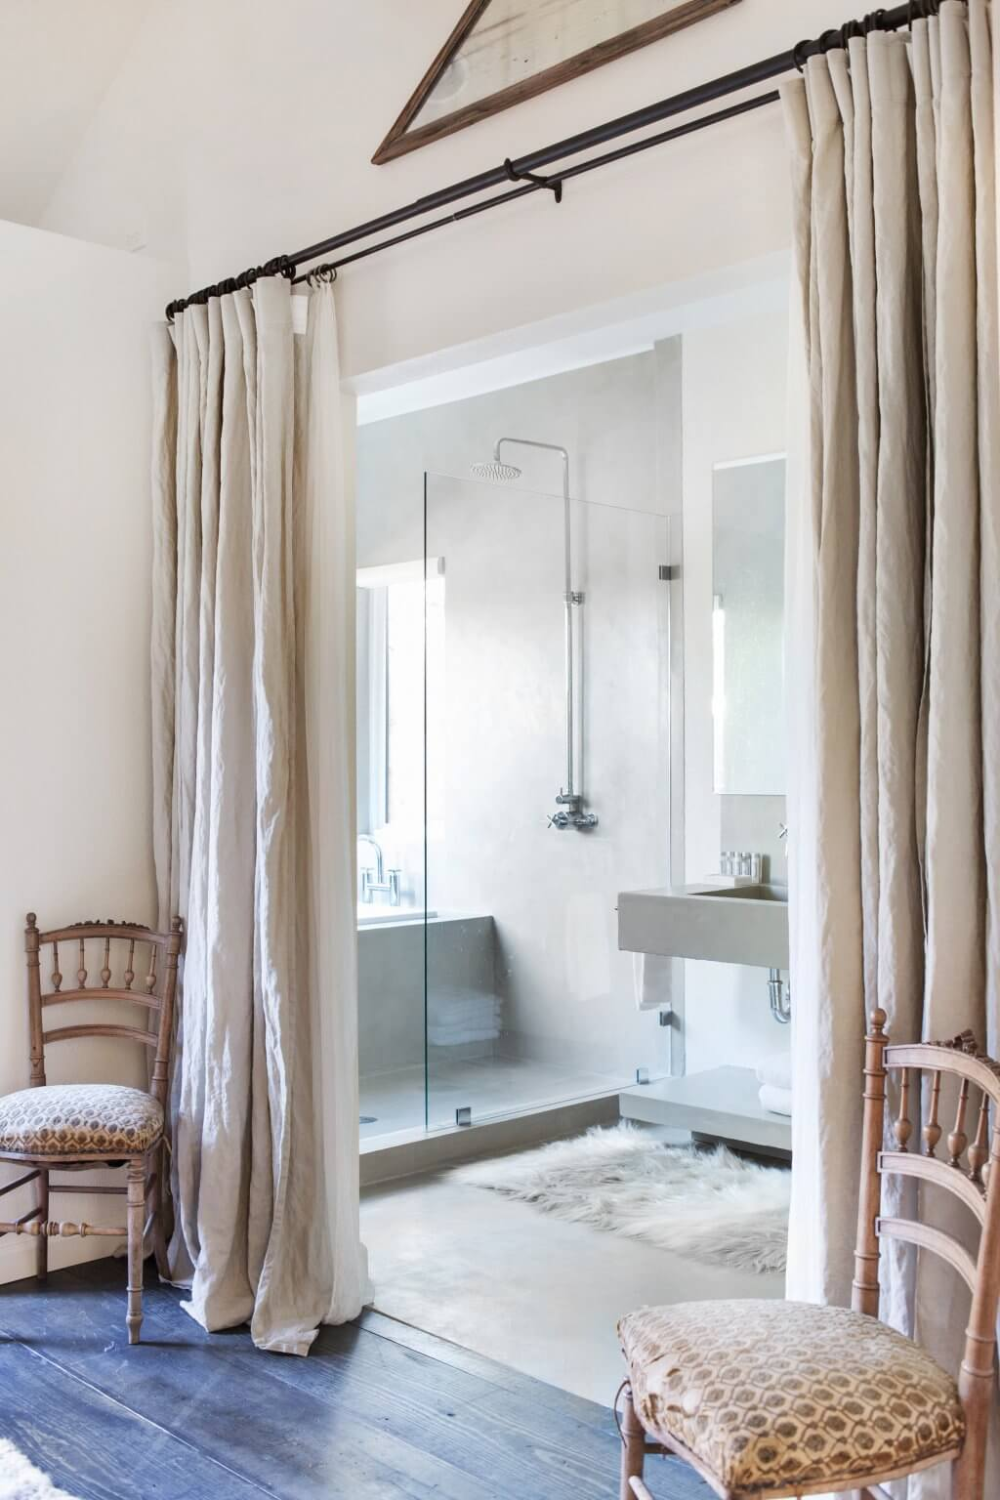 Bathroom Room Divider With Curtains Home Decorating Trends Homedit In 2020 Bedroom Divider Room Divider Curtain Separating Rooms